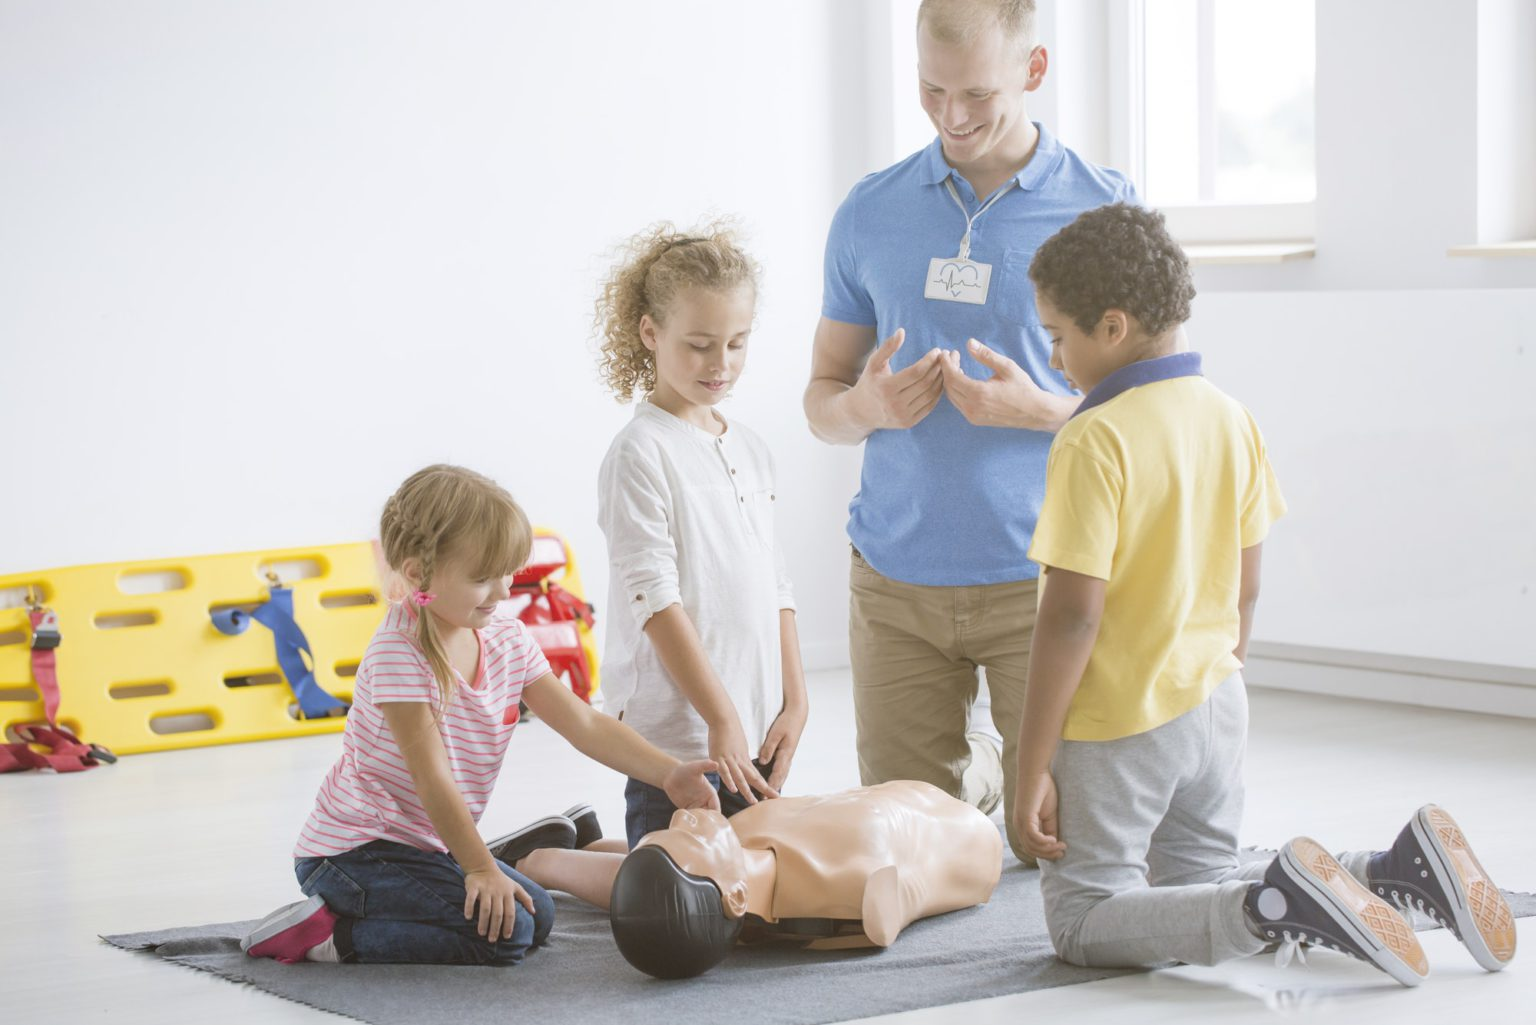 Kids practicing first aid steps